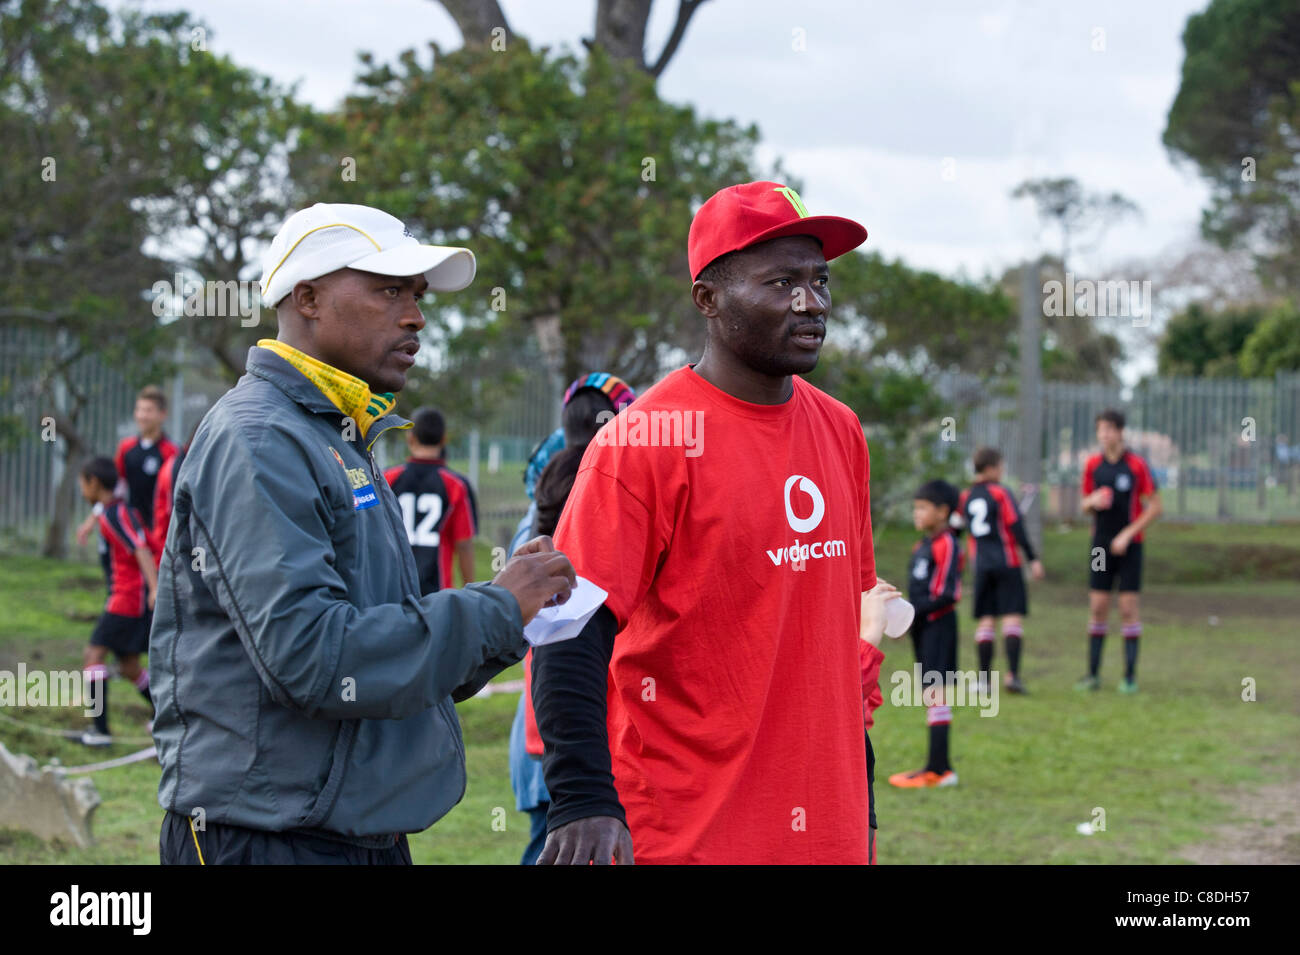 Football coaches watching a match of a youth team in Cape Town South Africa Stock Photo